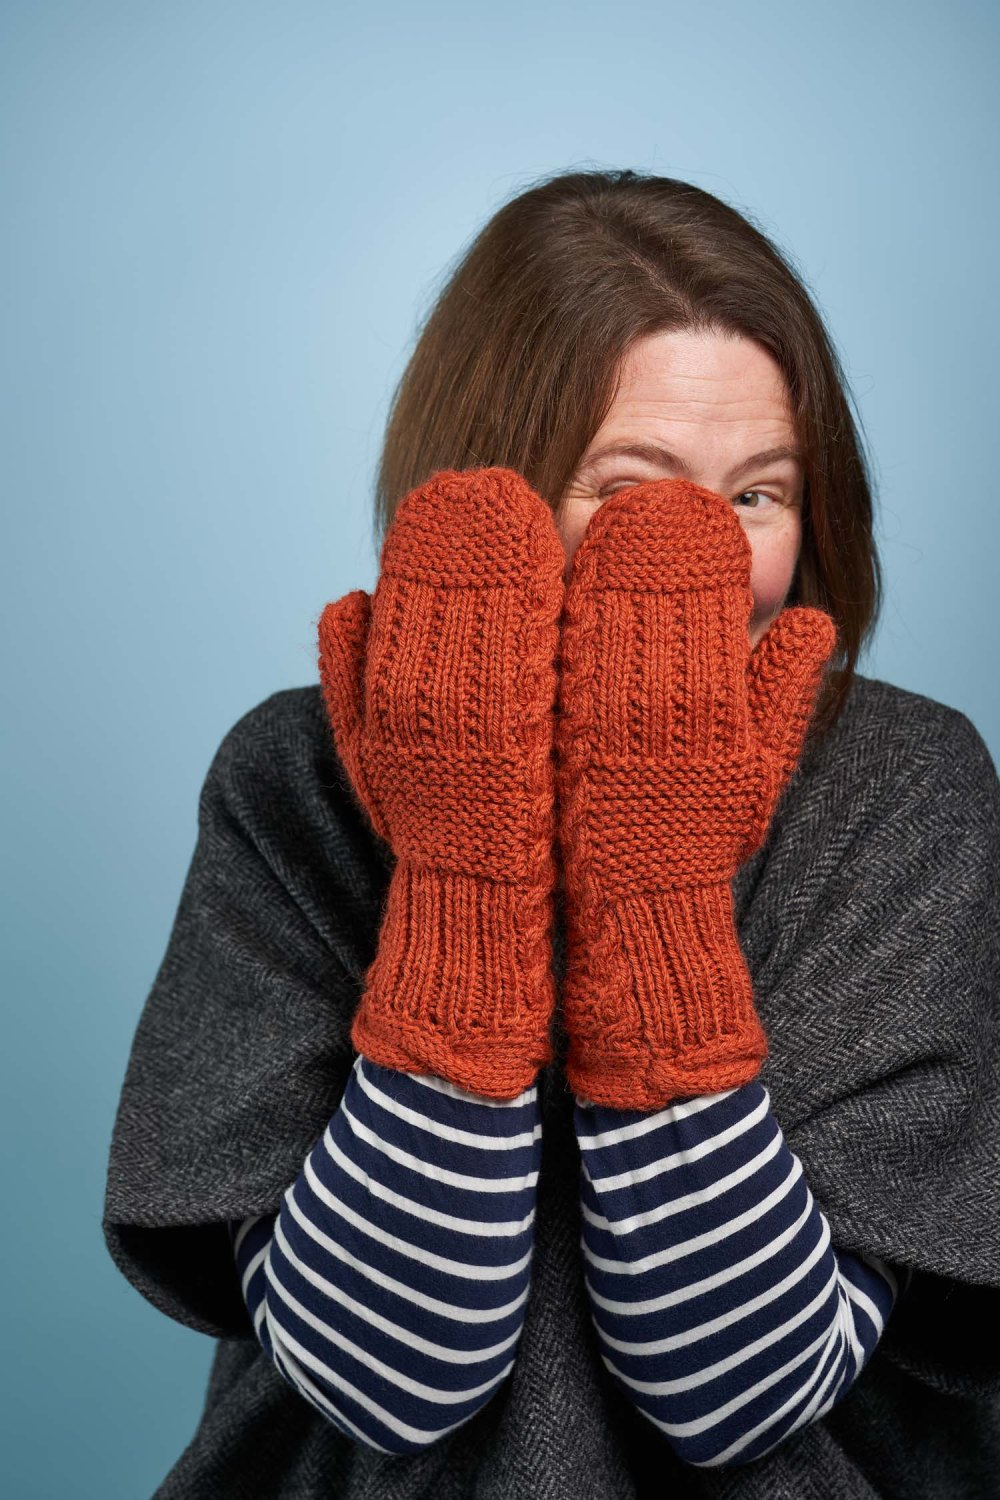 Fond mittens, designed by Natalie Warner and published by Arnall-Culliford Knitwear. Part of the Something to Knit Together Winter Edition, 2020